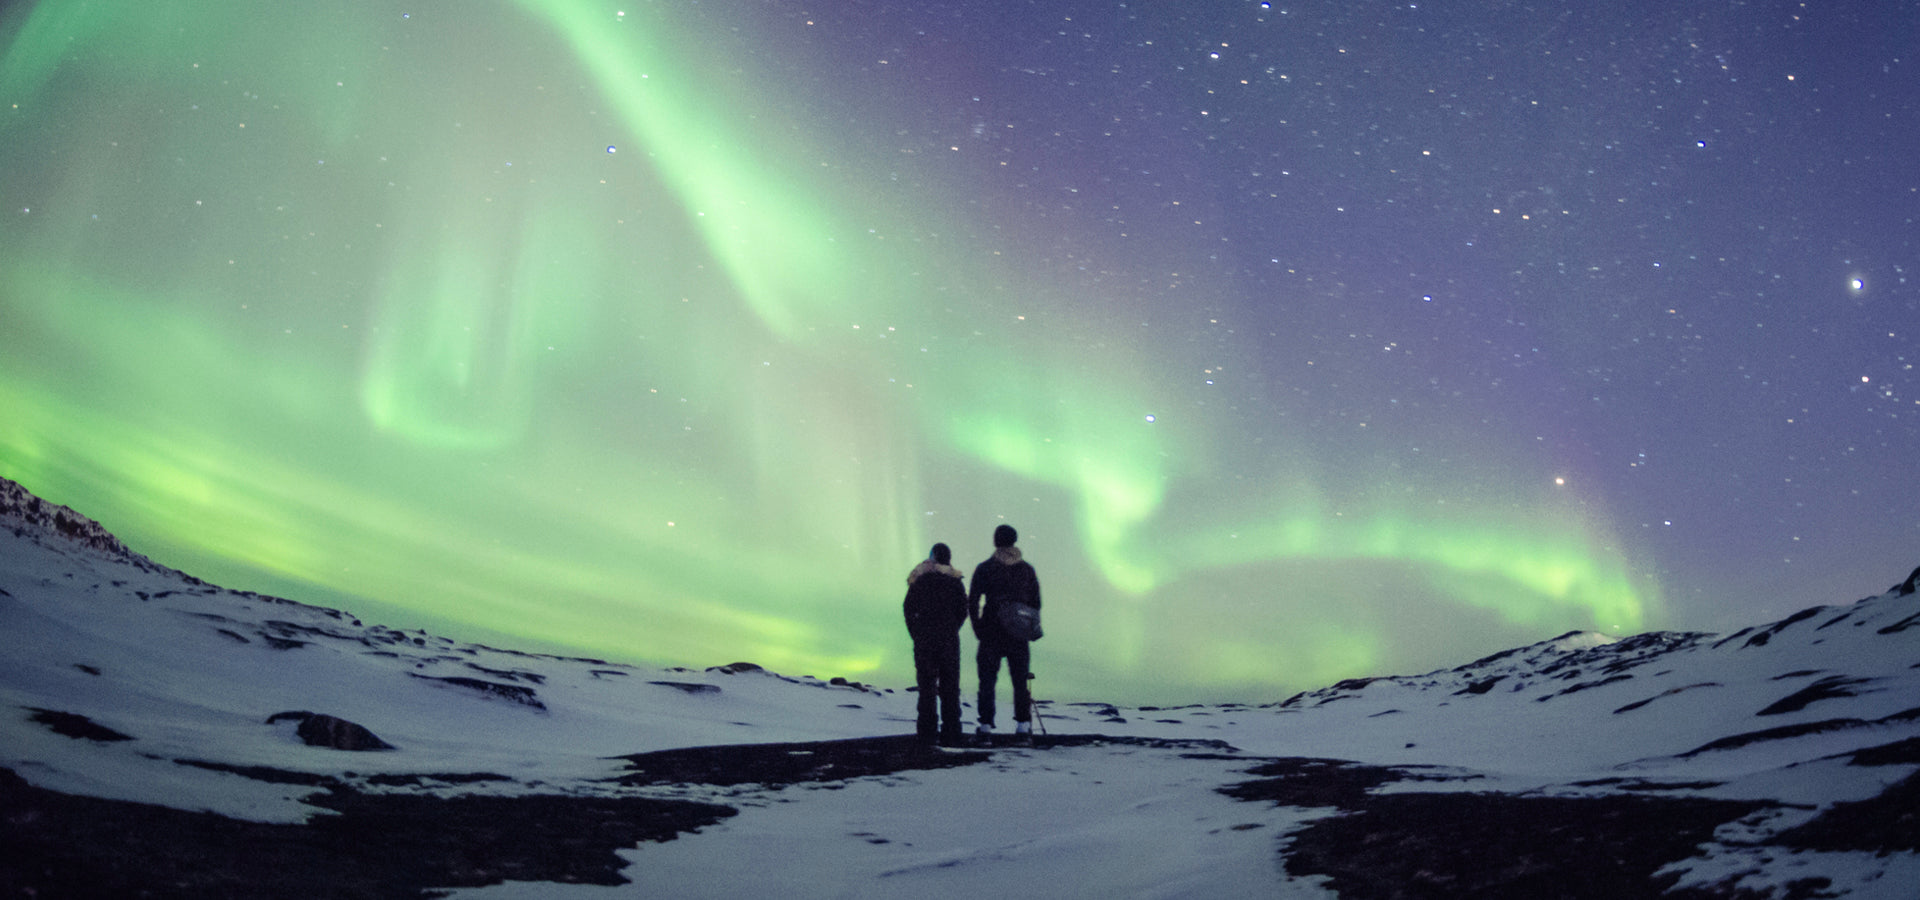 Finding Inspiration in the Aurora Borealis